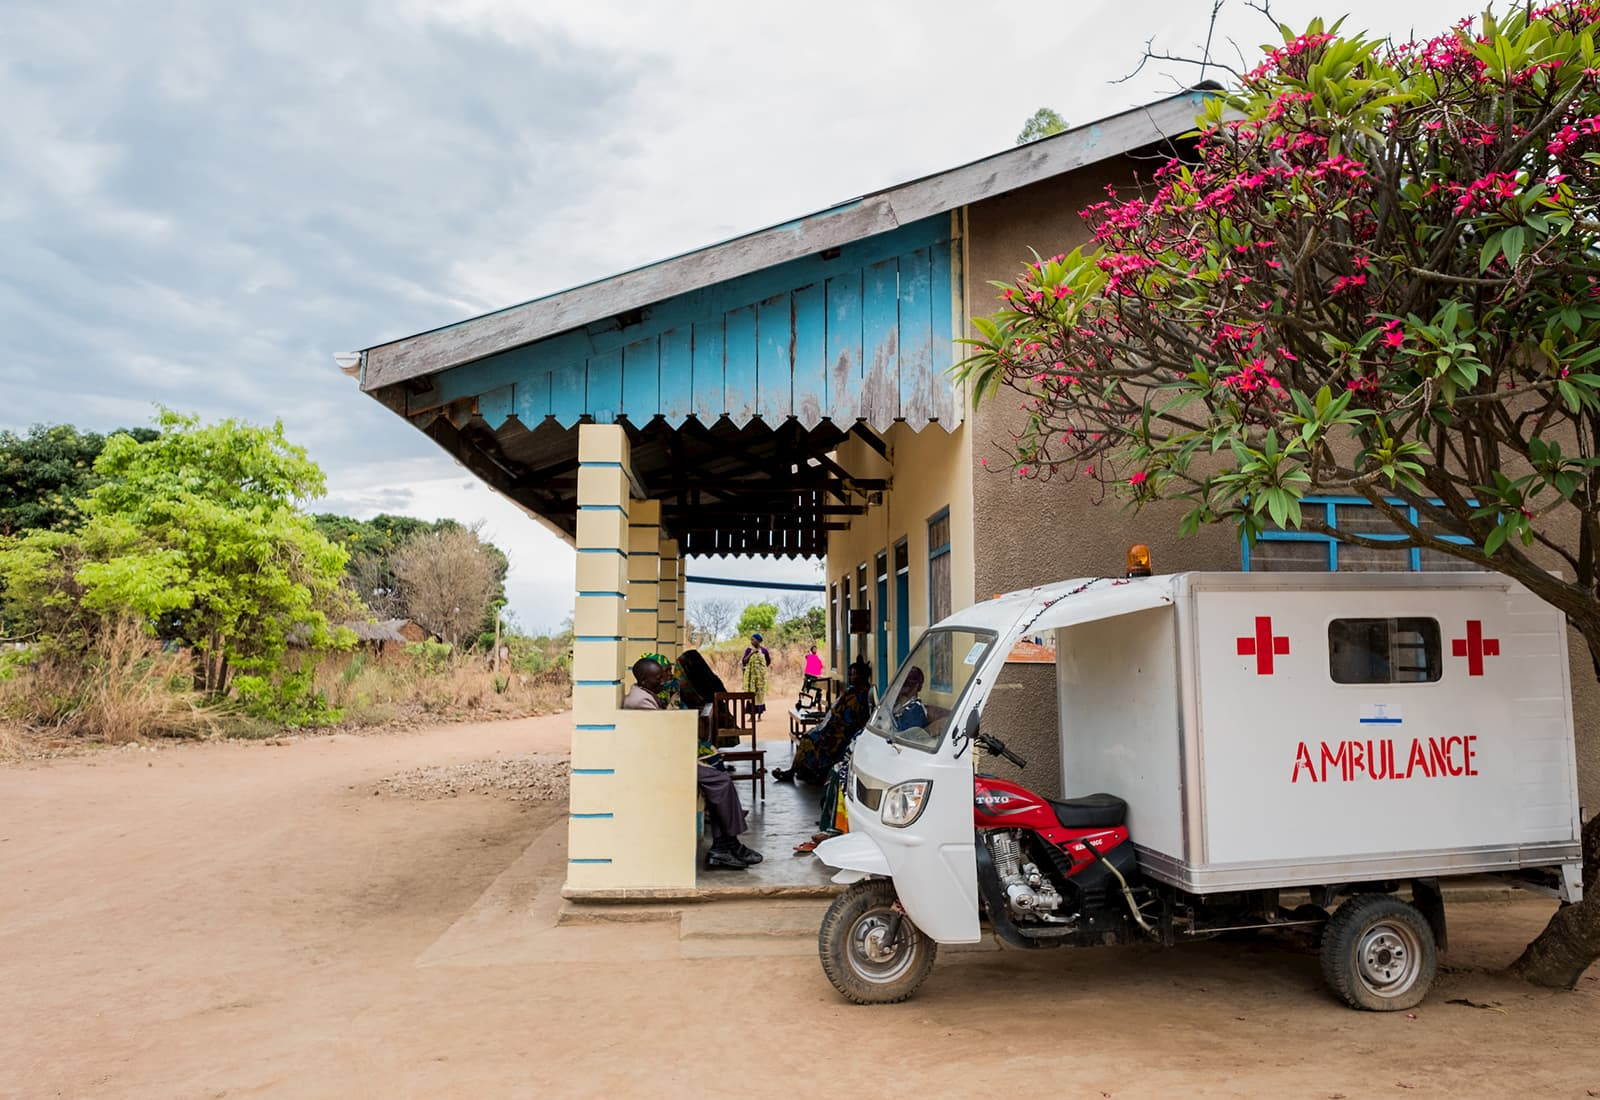 Ambulance outside of a Bloomberg Philanthropies supported Maternal Health facility in Tanzania.